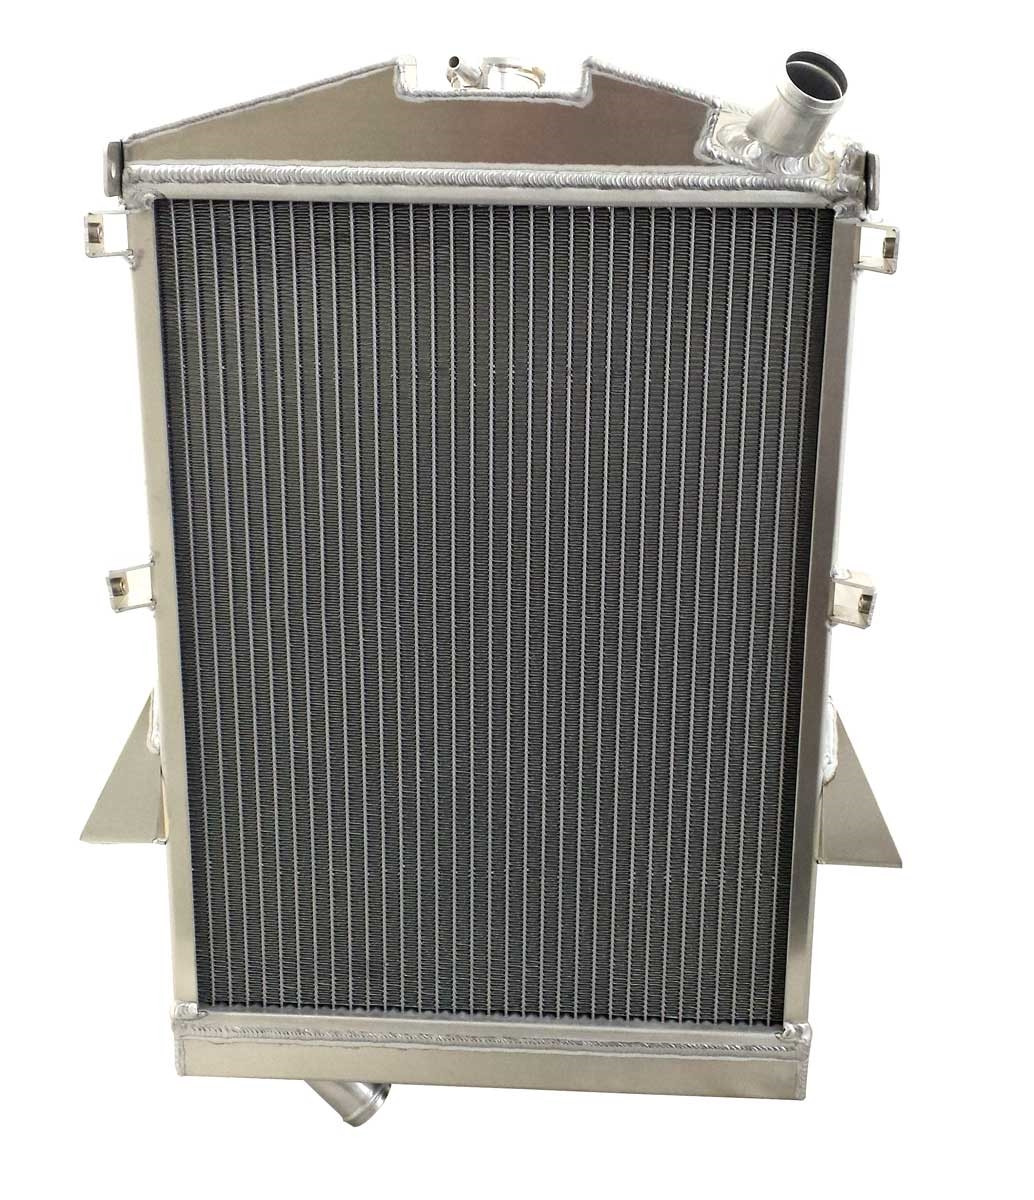 1954 Jaguar Xk140: High Performance 1954-1957 Jaguar XK140 Aluminum Radiator